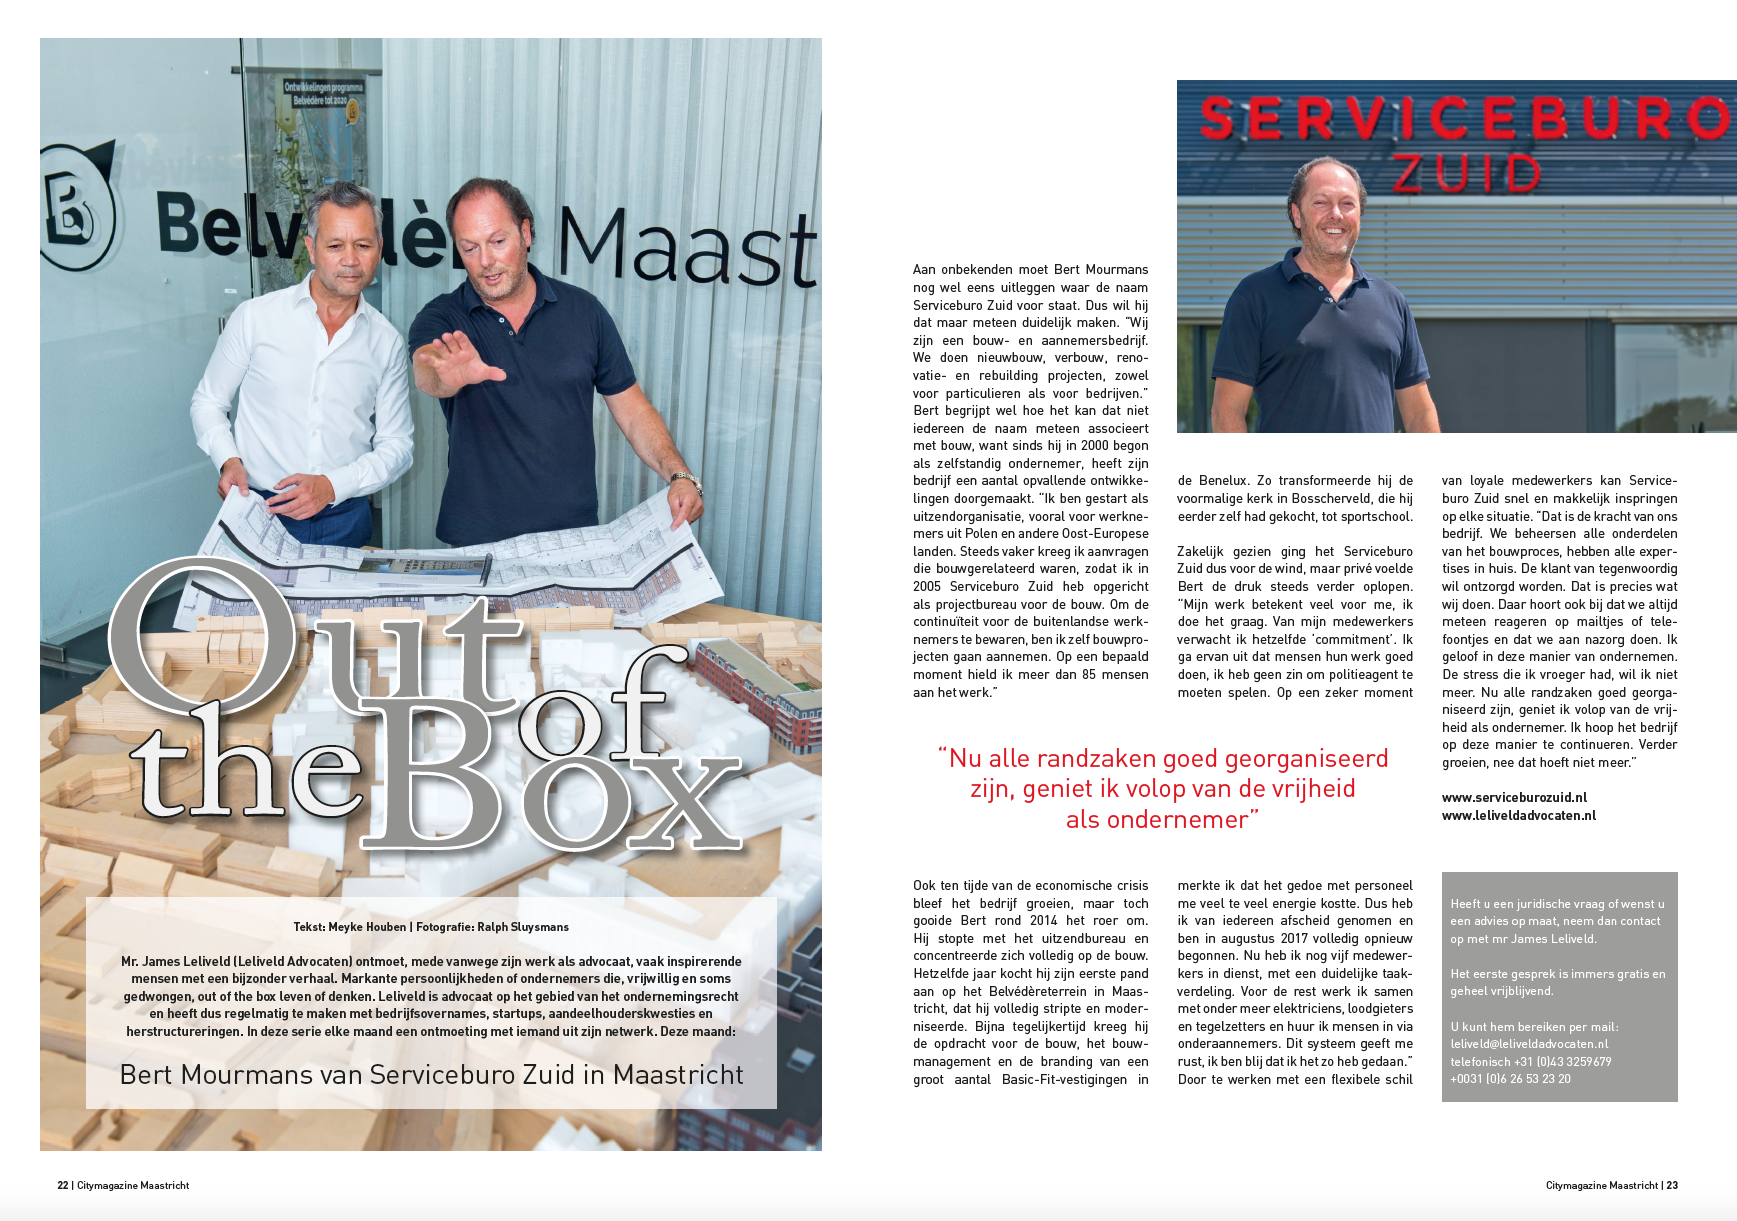 Out of the Box - Bert Mourmans - Serviceburo Zuid